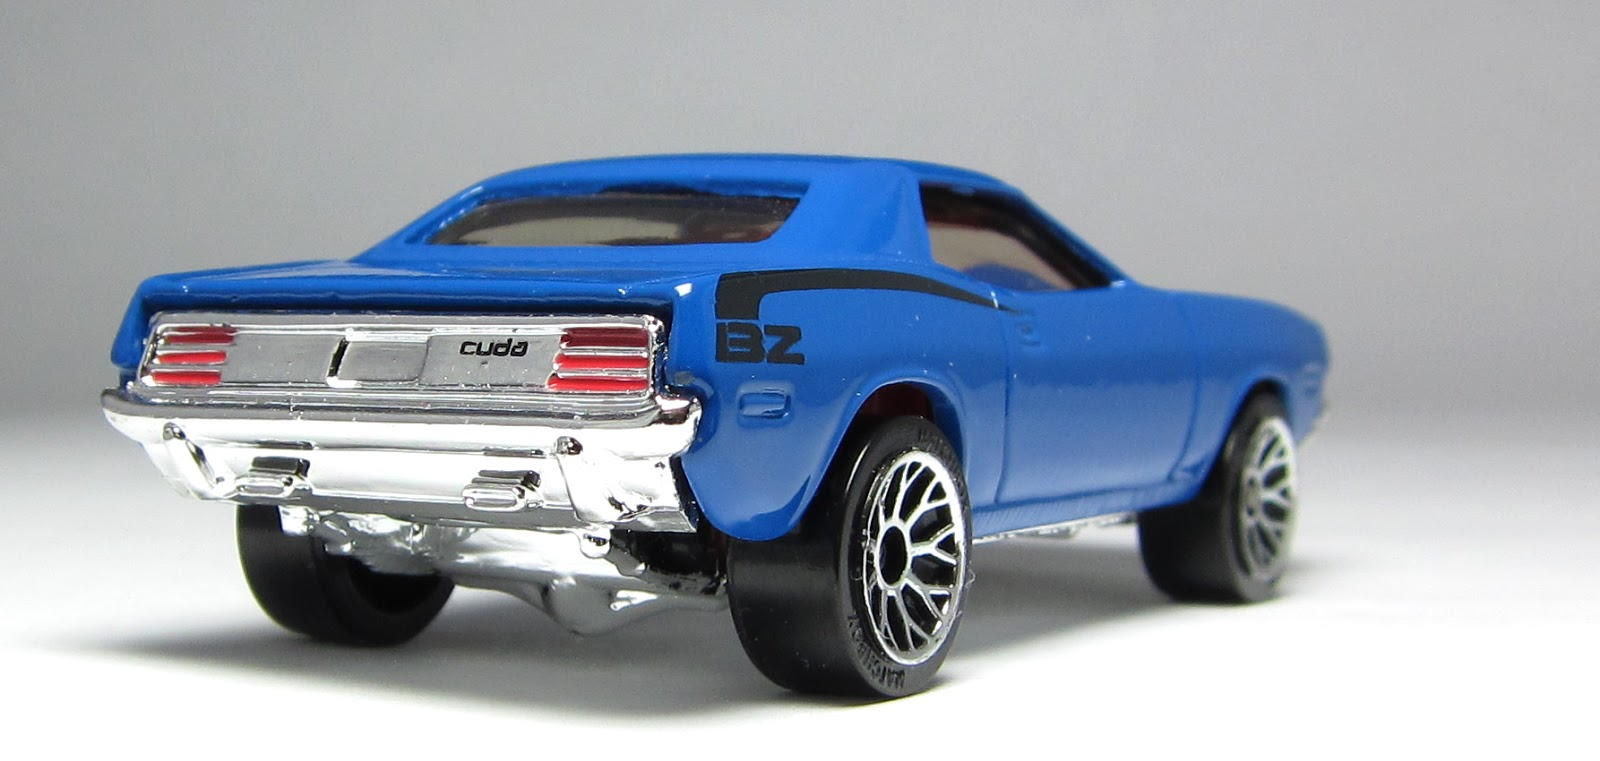 the Lamley Group: Matchbox Monday Model of the Day: 2005 Burger Zone 5 ...